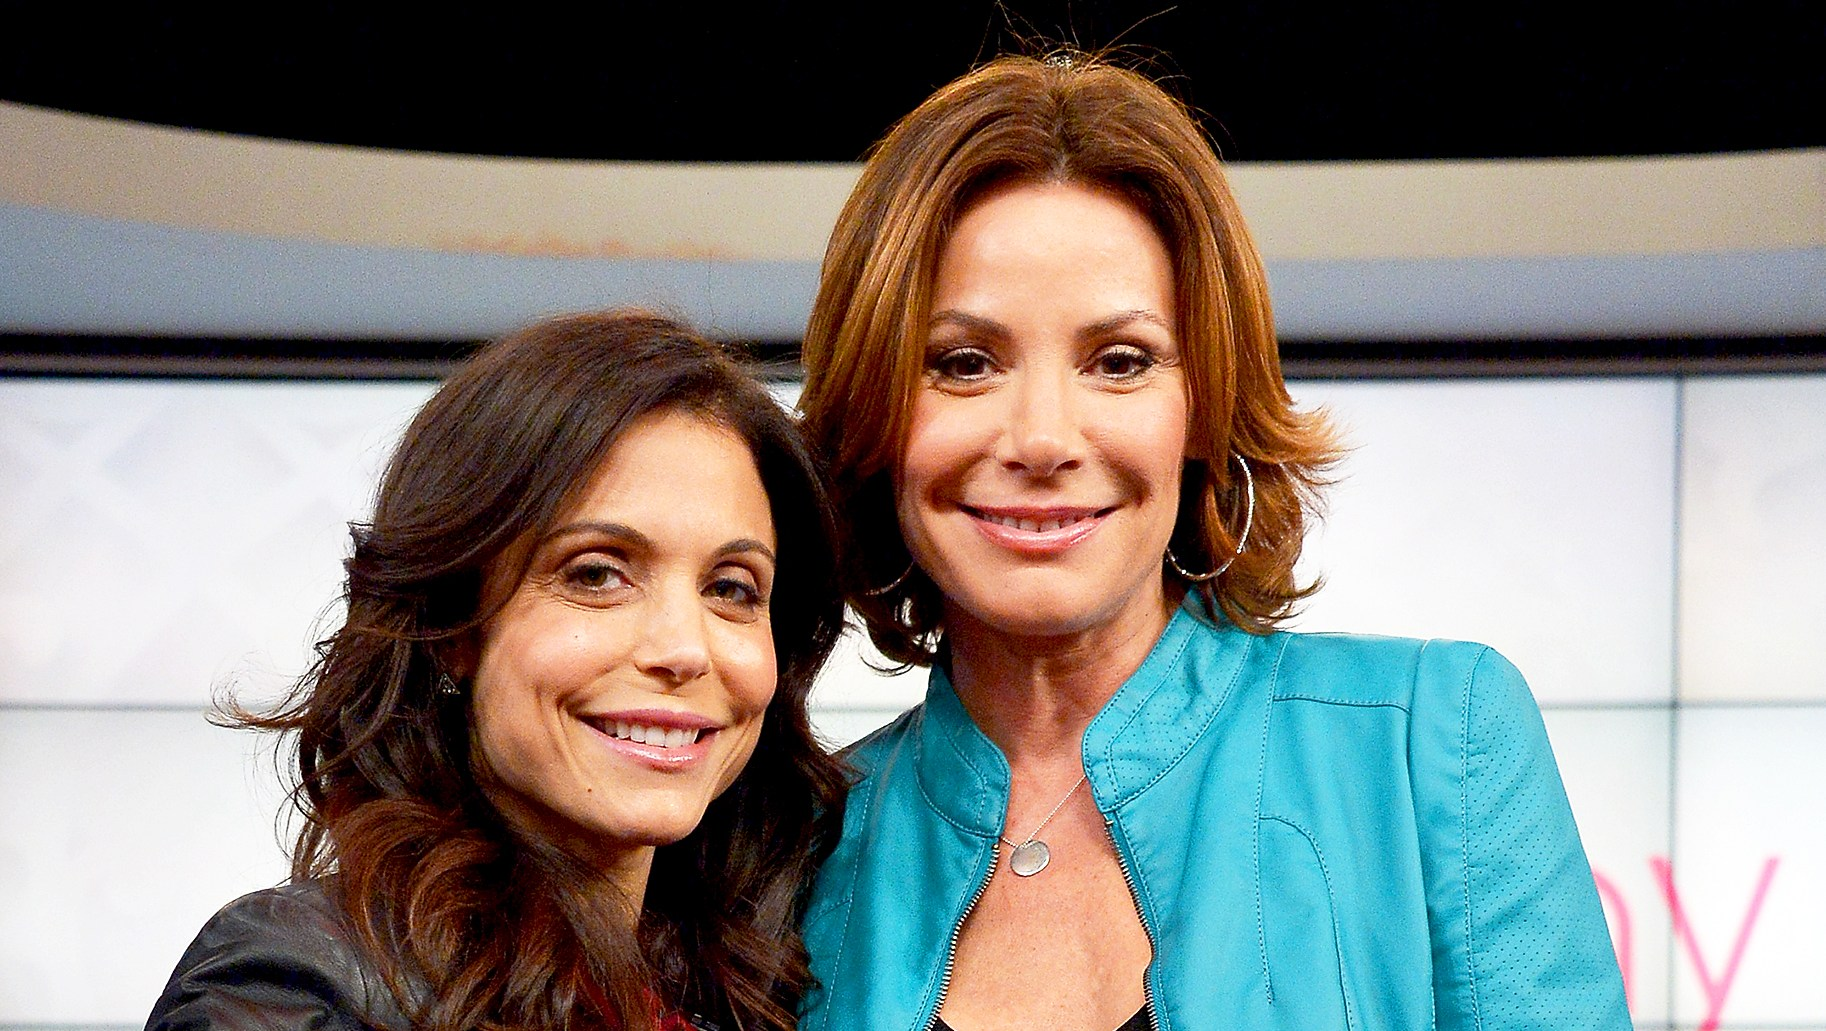 Bethenny Frankel and Luann de Lesseps at the CBS Broadcast Center in New York City.